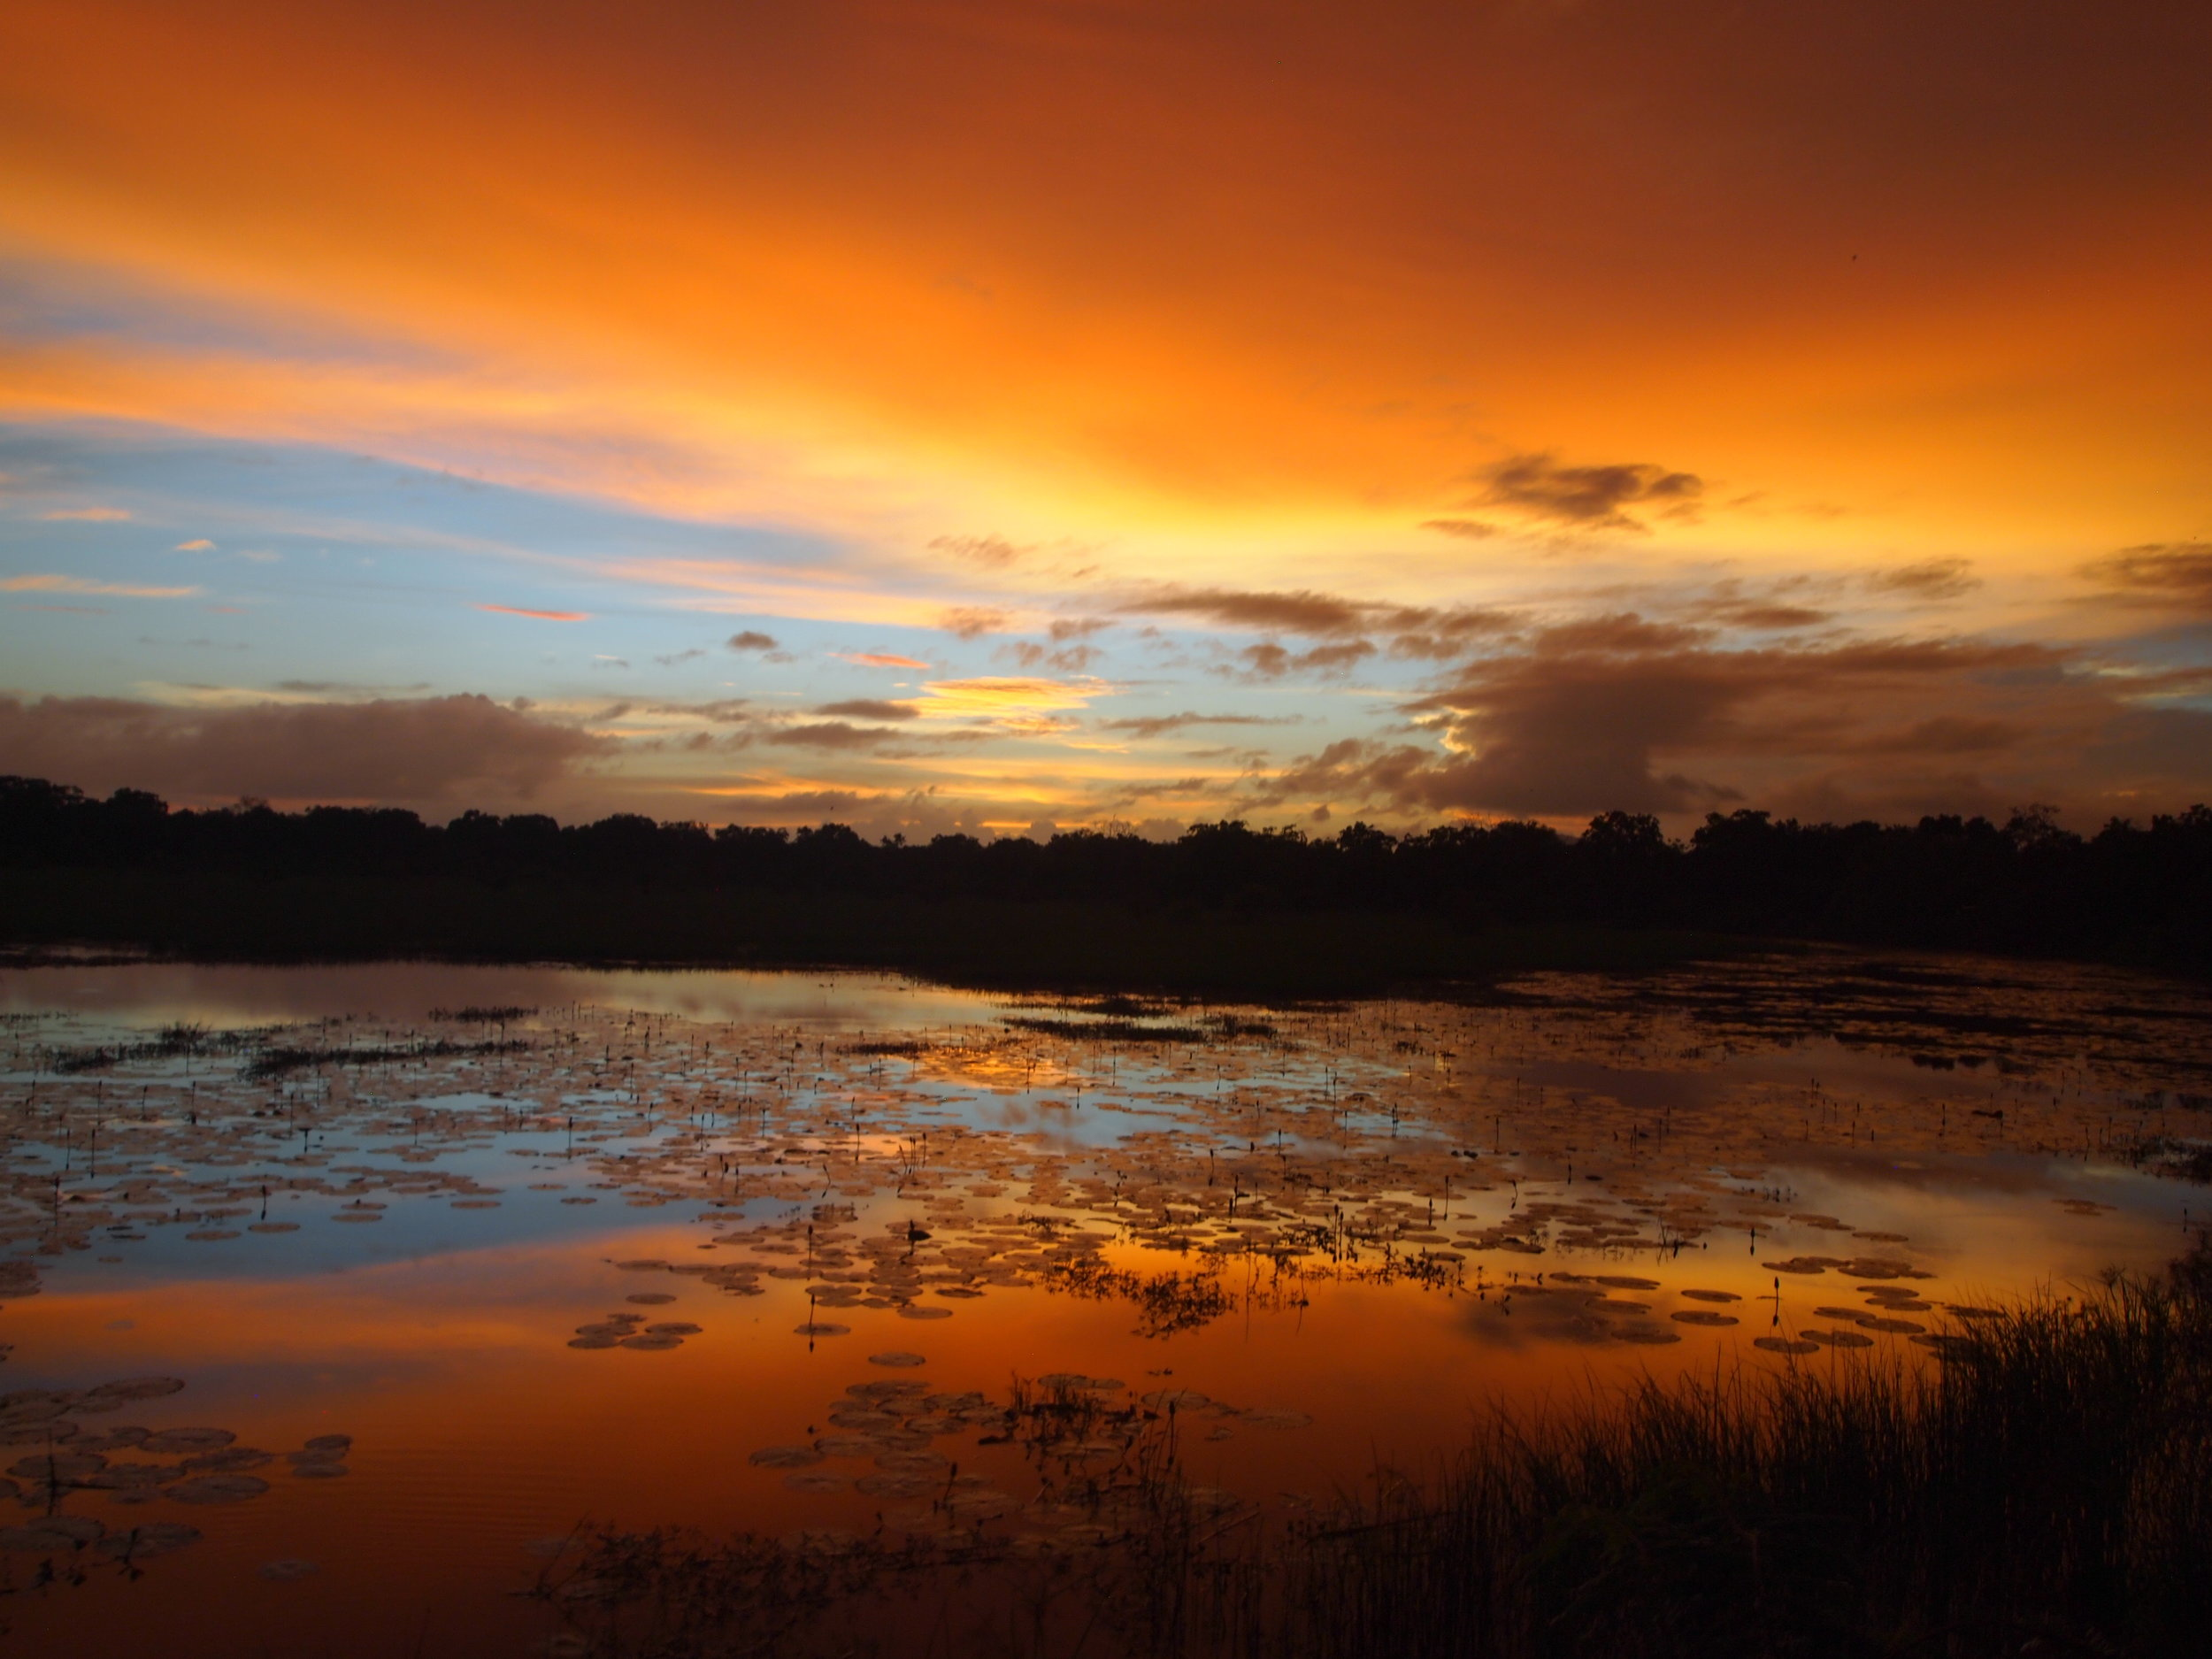 Sunset at Yala National Park, Sri Lanka (image by Jacqui Gibson).